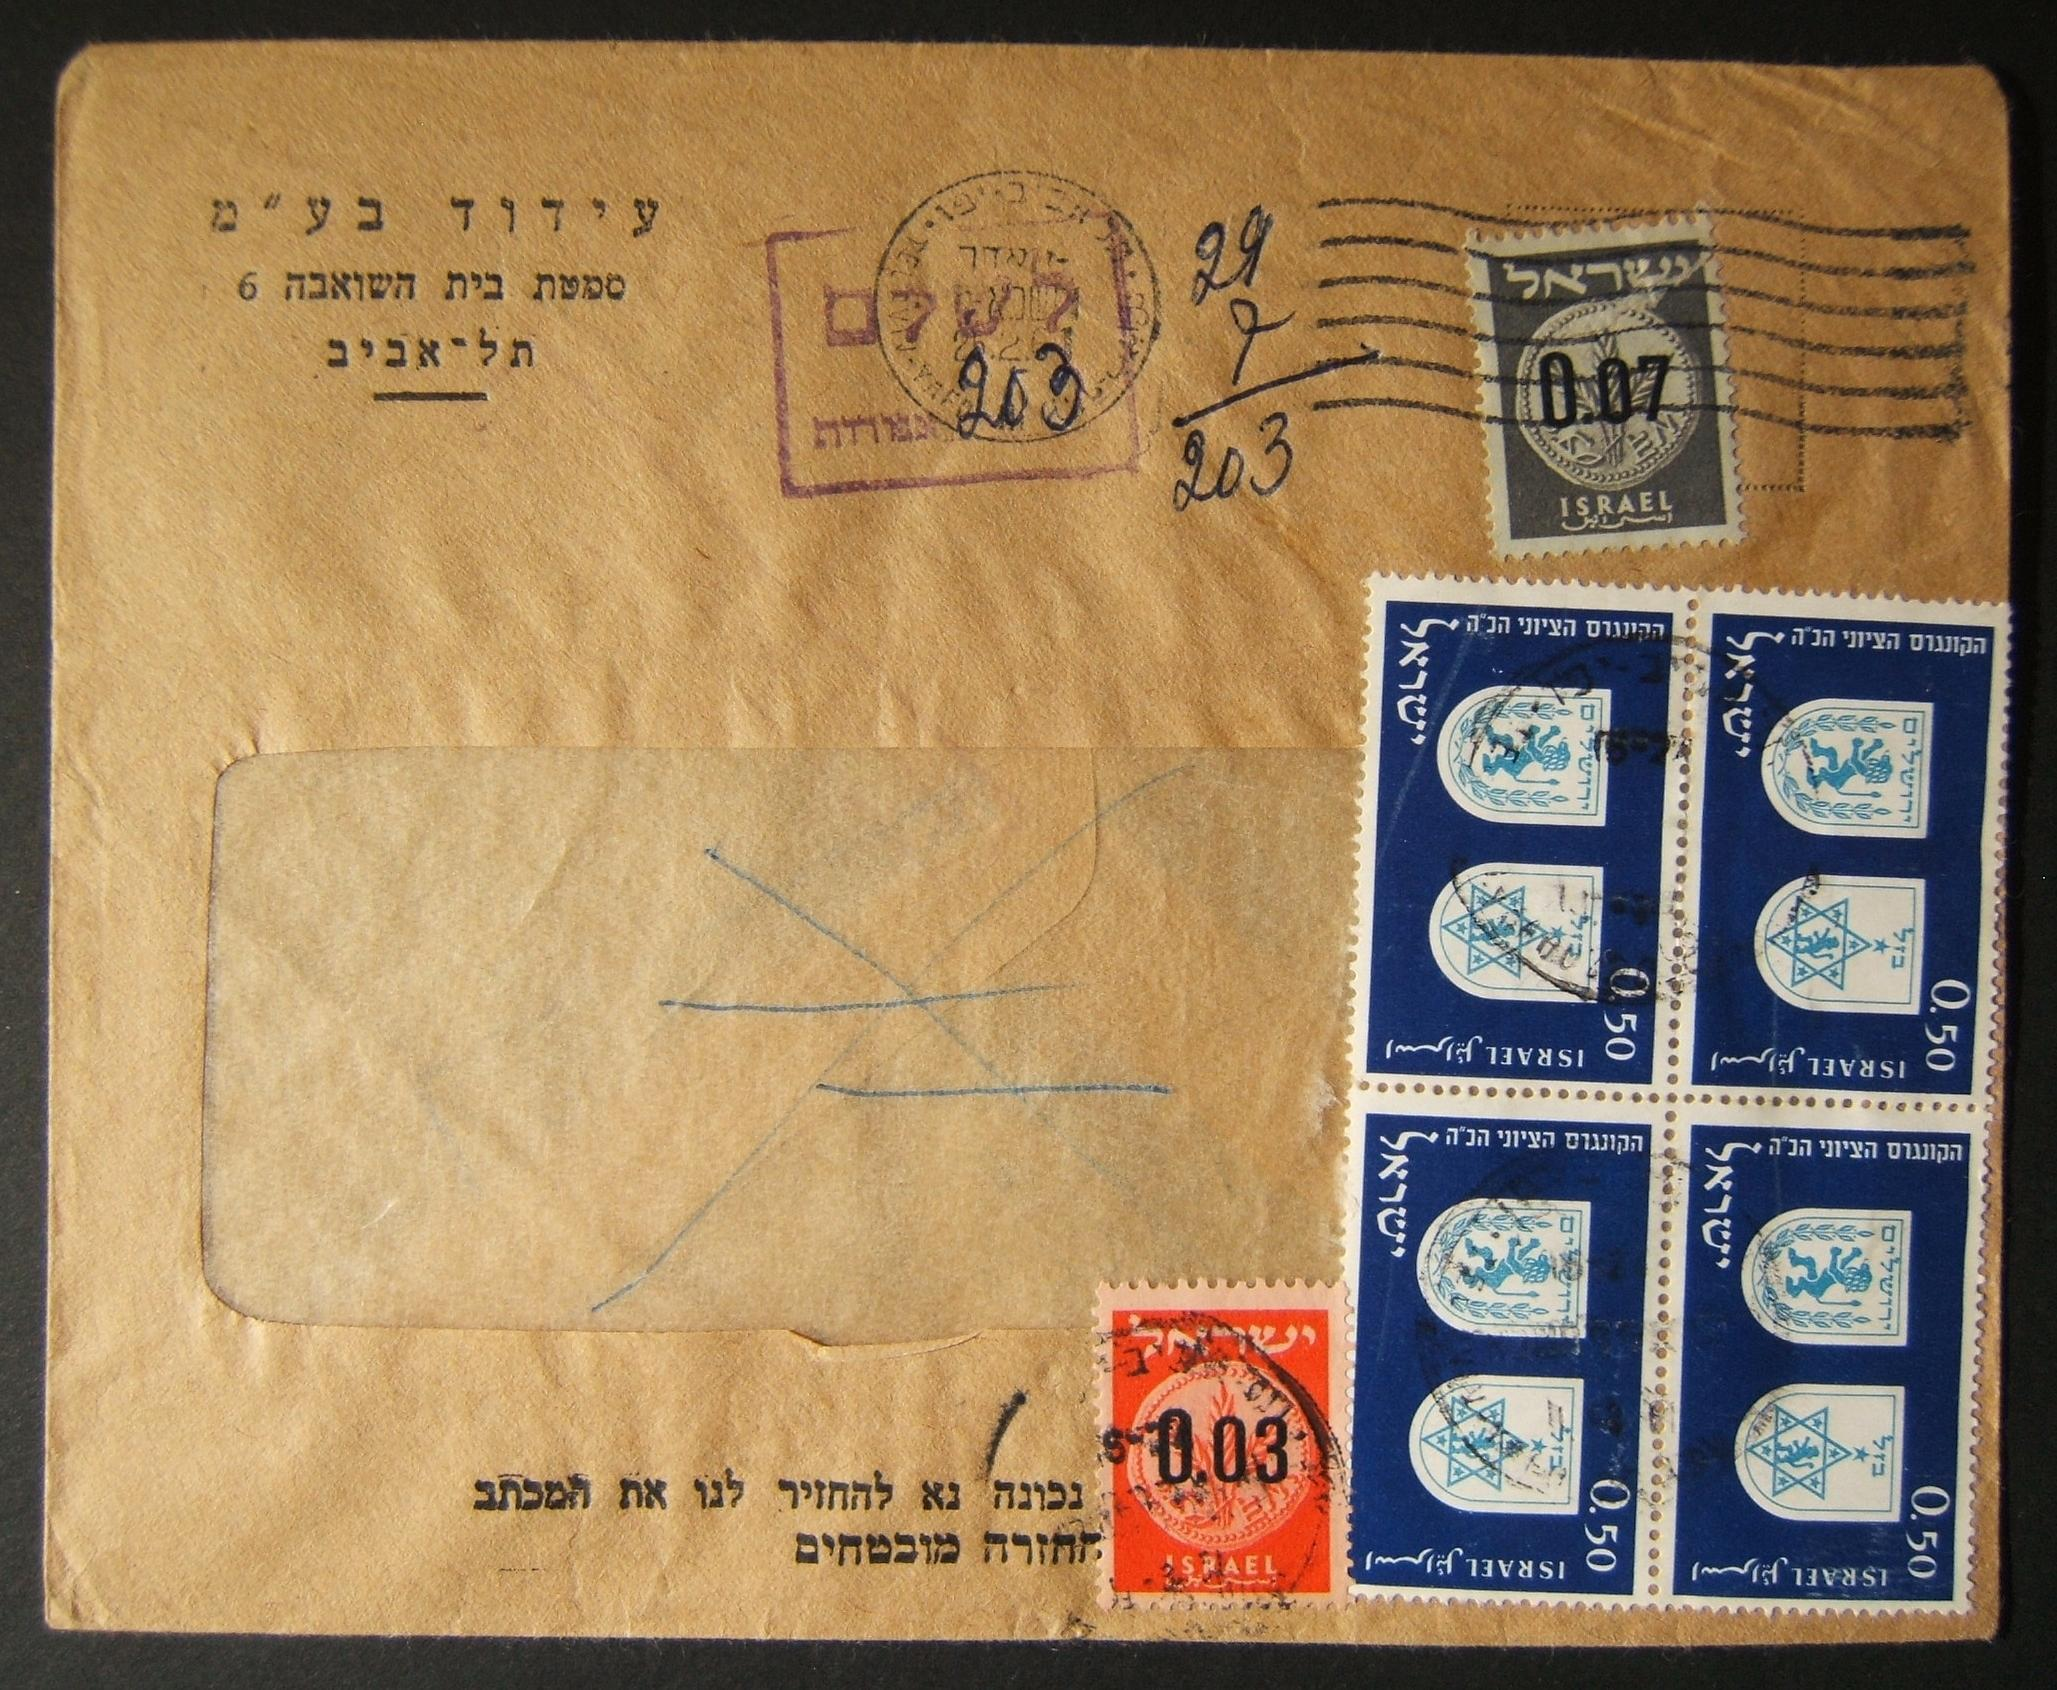 1961 domestic 'top of the pile' taxed franking: 25-2-61 printed matter commercial cover ex TLV branch of Idud Ltd. to BNEI BRAK franked 7 Ag at the DO-10 period PM rate using 1960